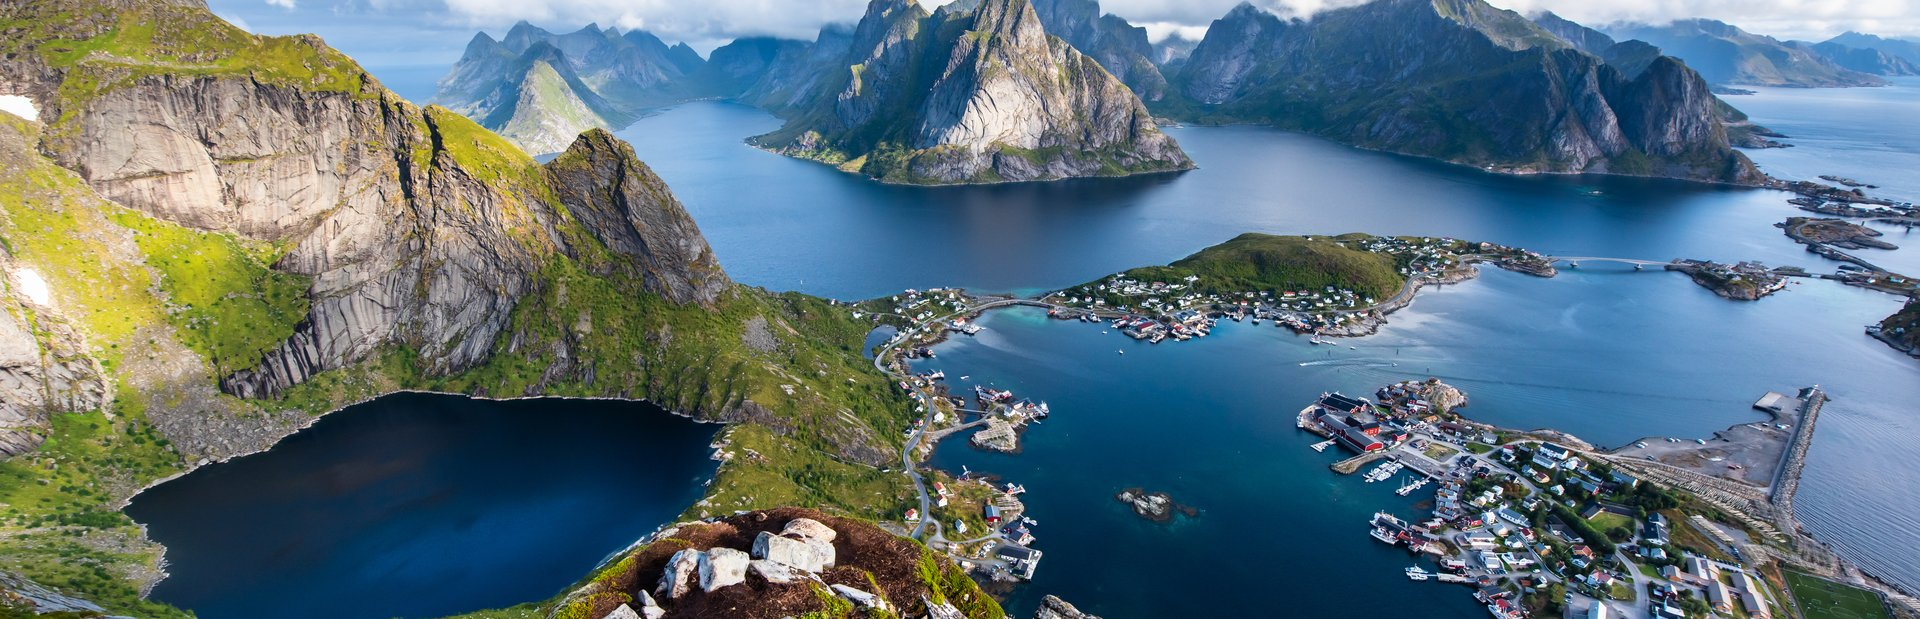 10 things you'll experience on a yacht charter in Norway